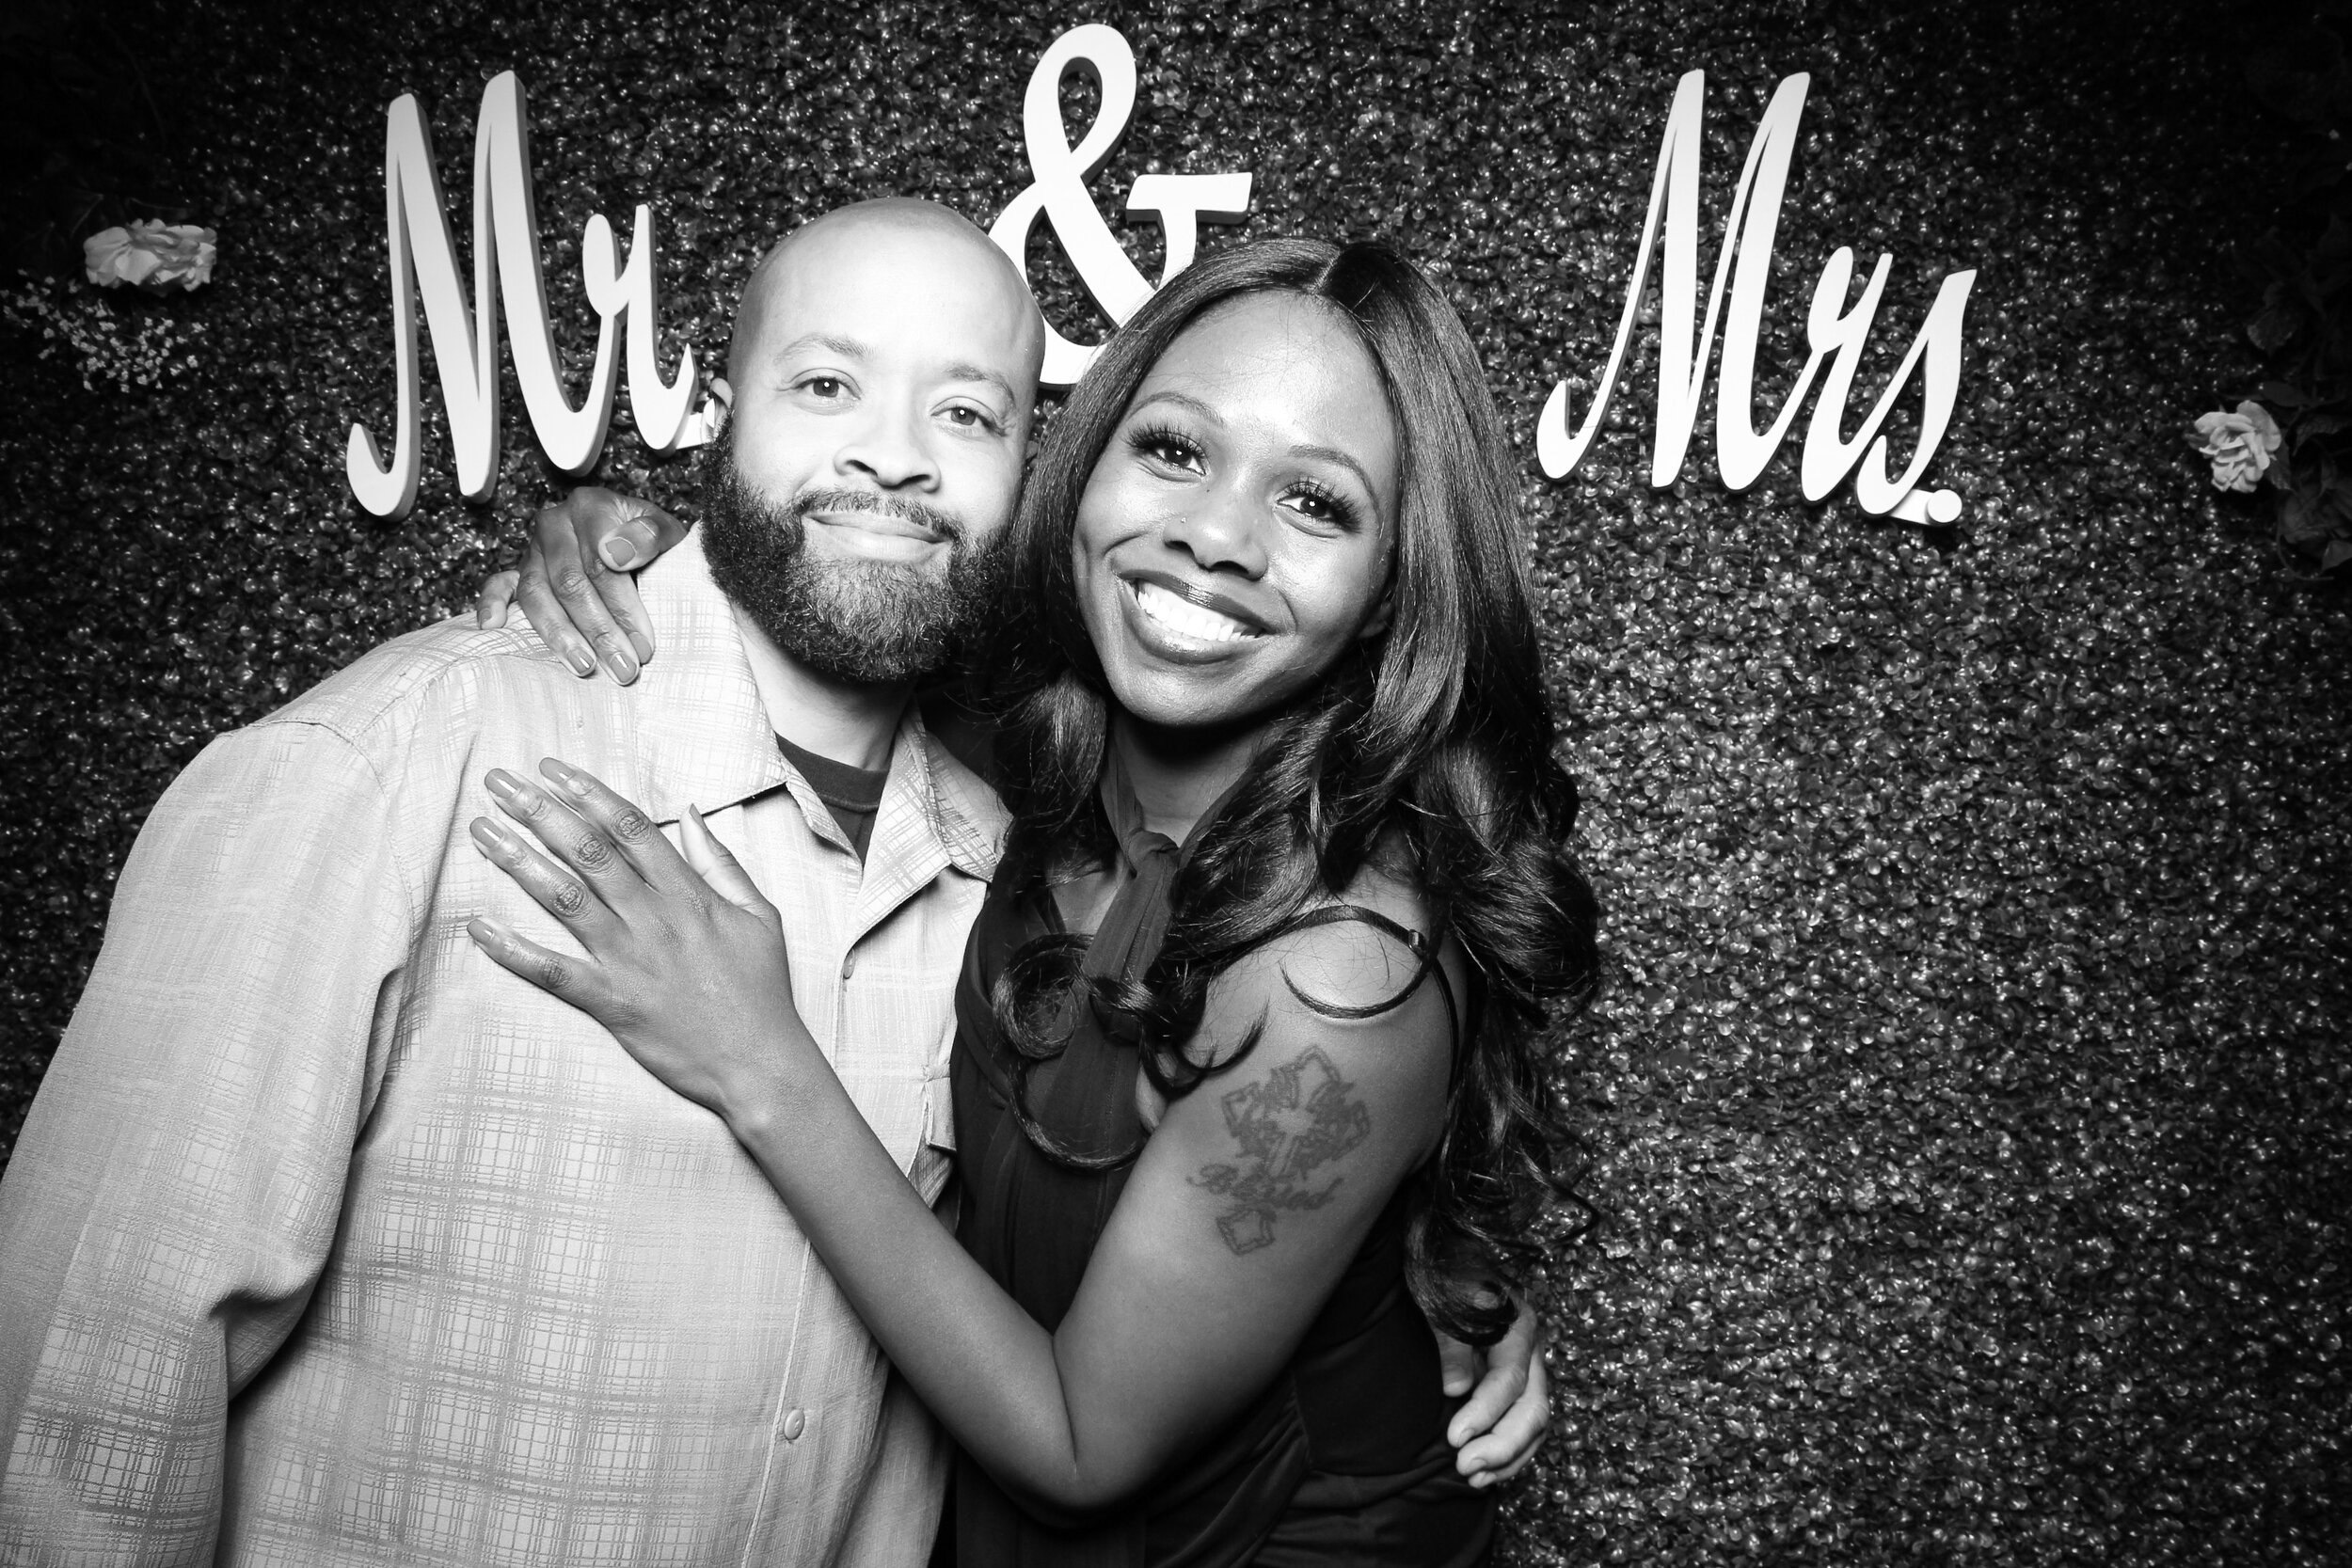 Green_Hedge_Ivy_Wall_Backdrop_Photo_Booth_Rental_Chicago_13.jpg